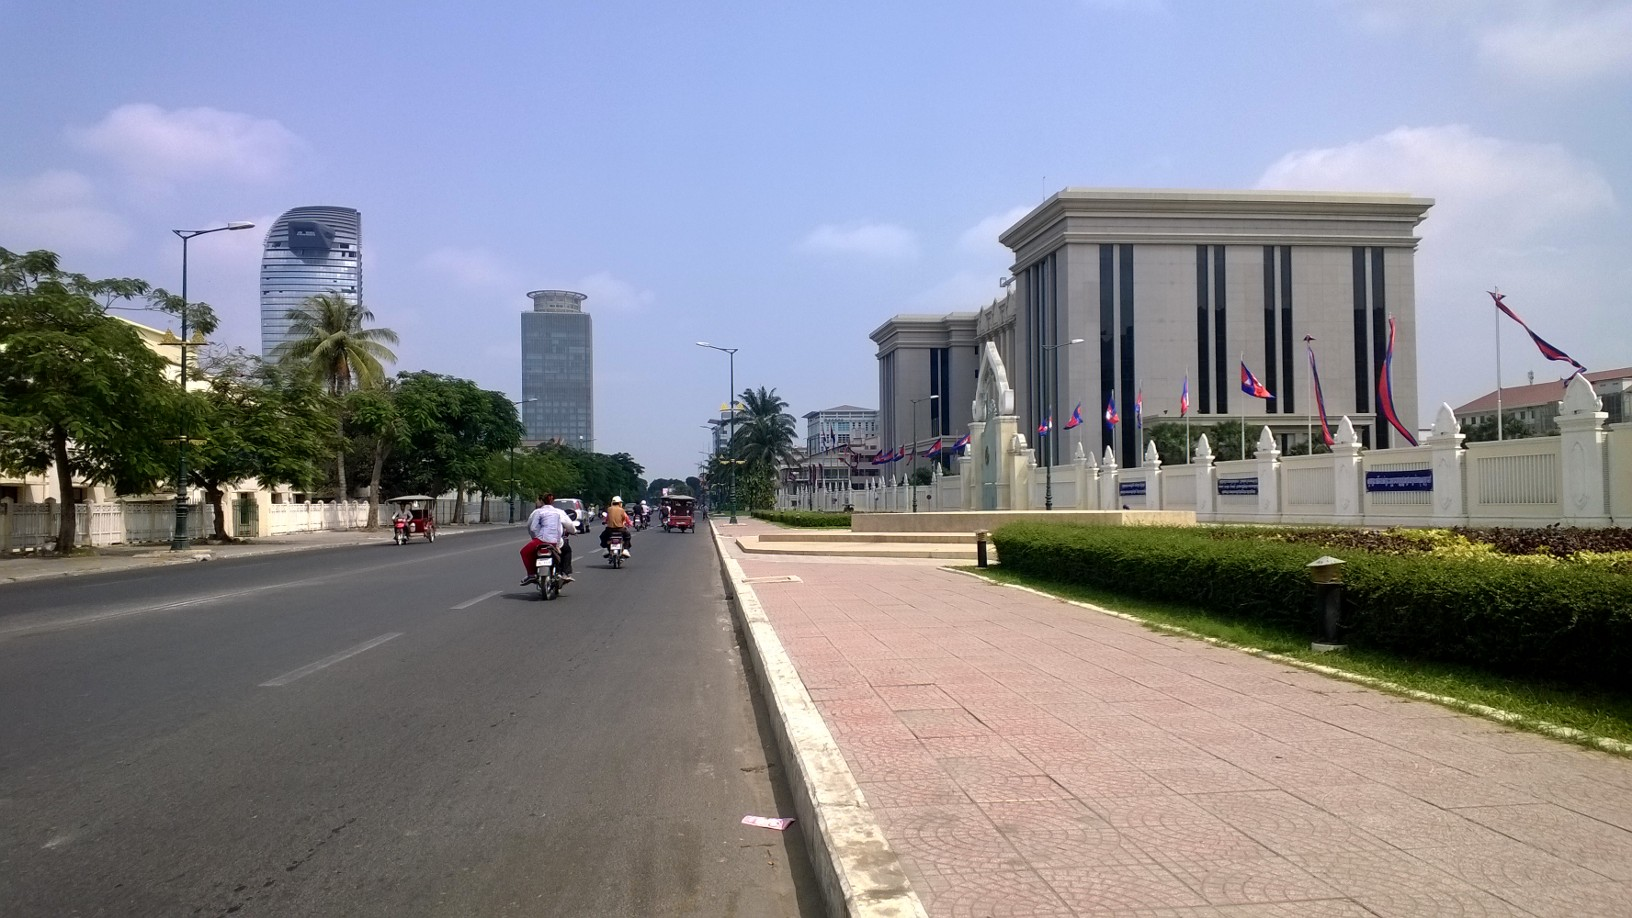 Phnom Penh today. Photo credit: Blue Lady Blog